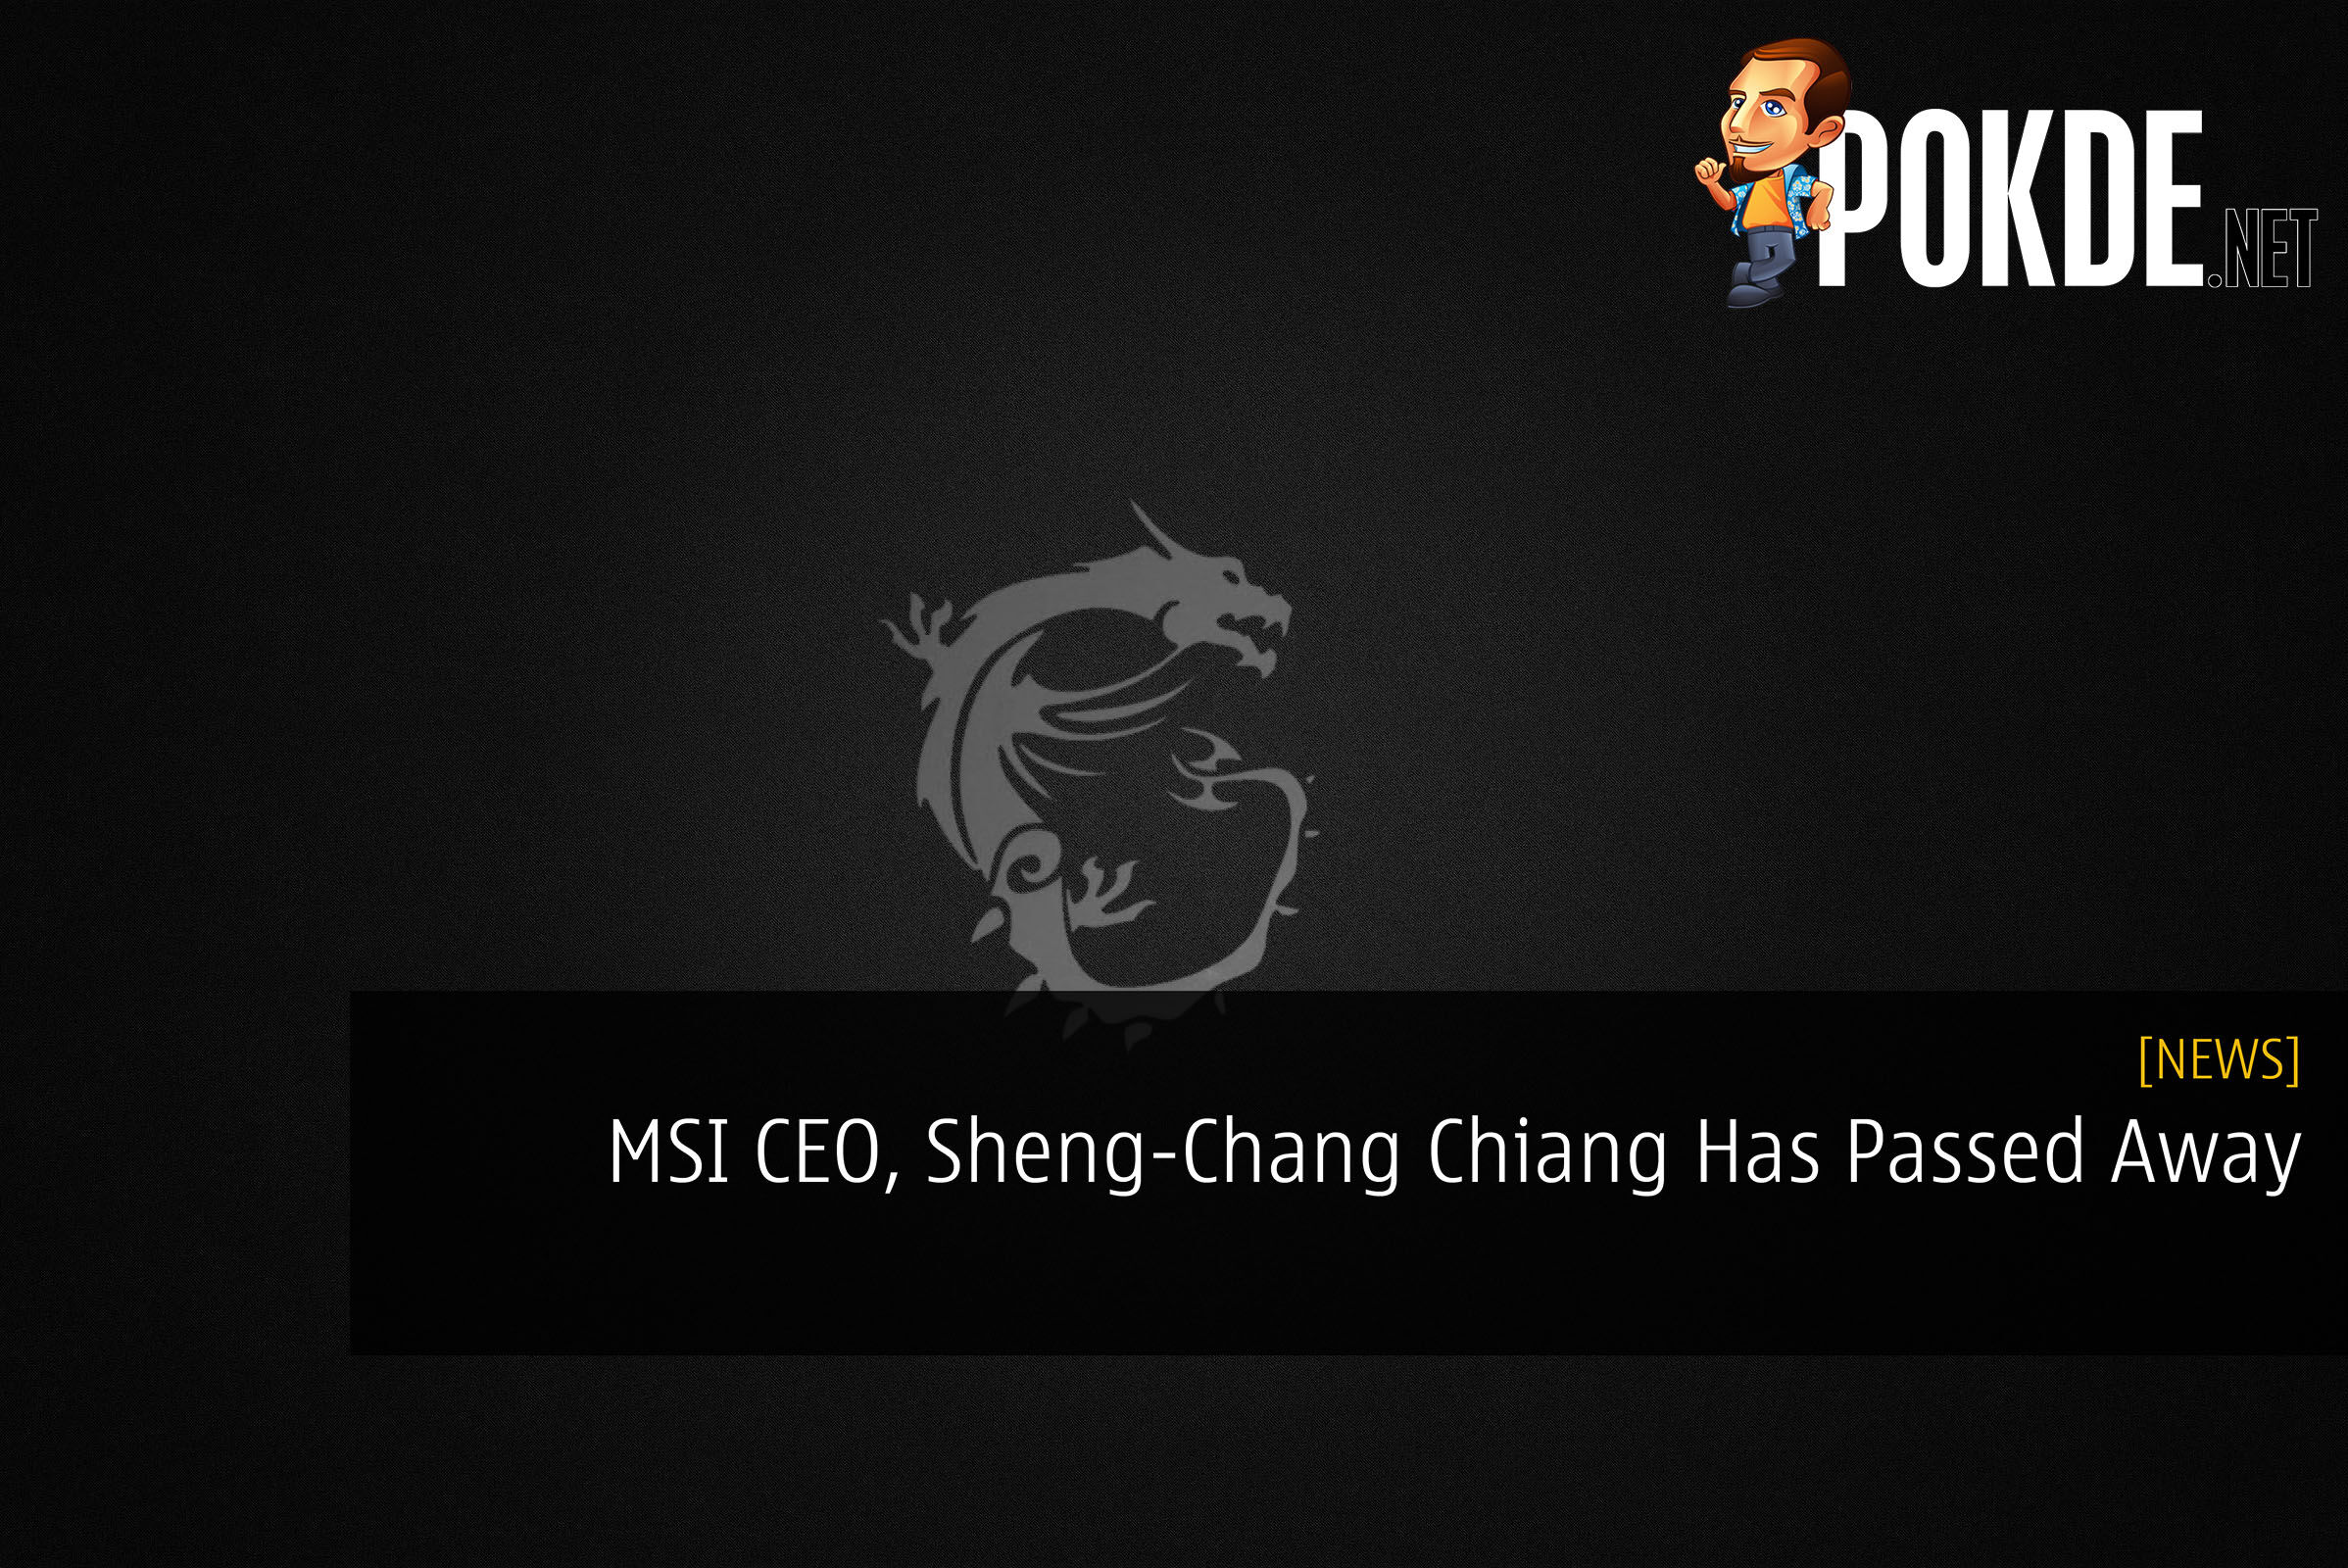 MSI CEO, Sheng-Chang Chiang Has Sadly Passed Away 3